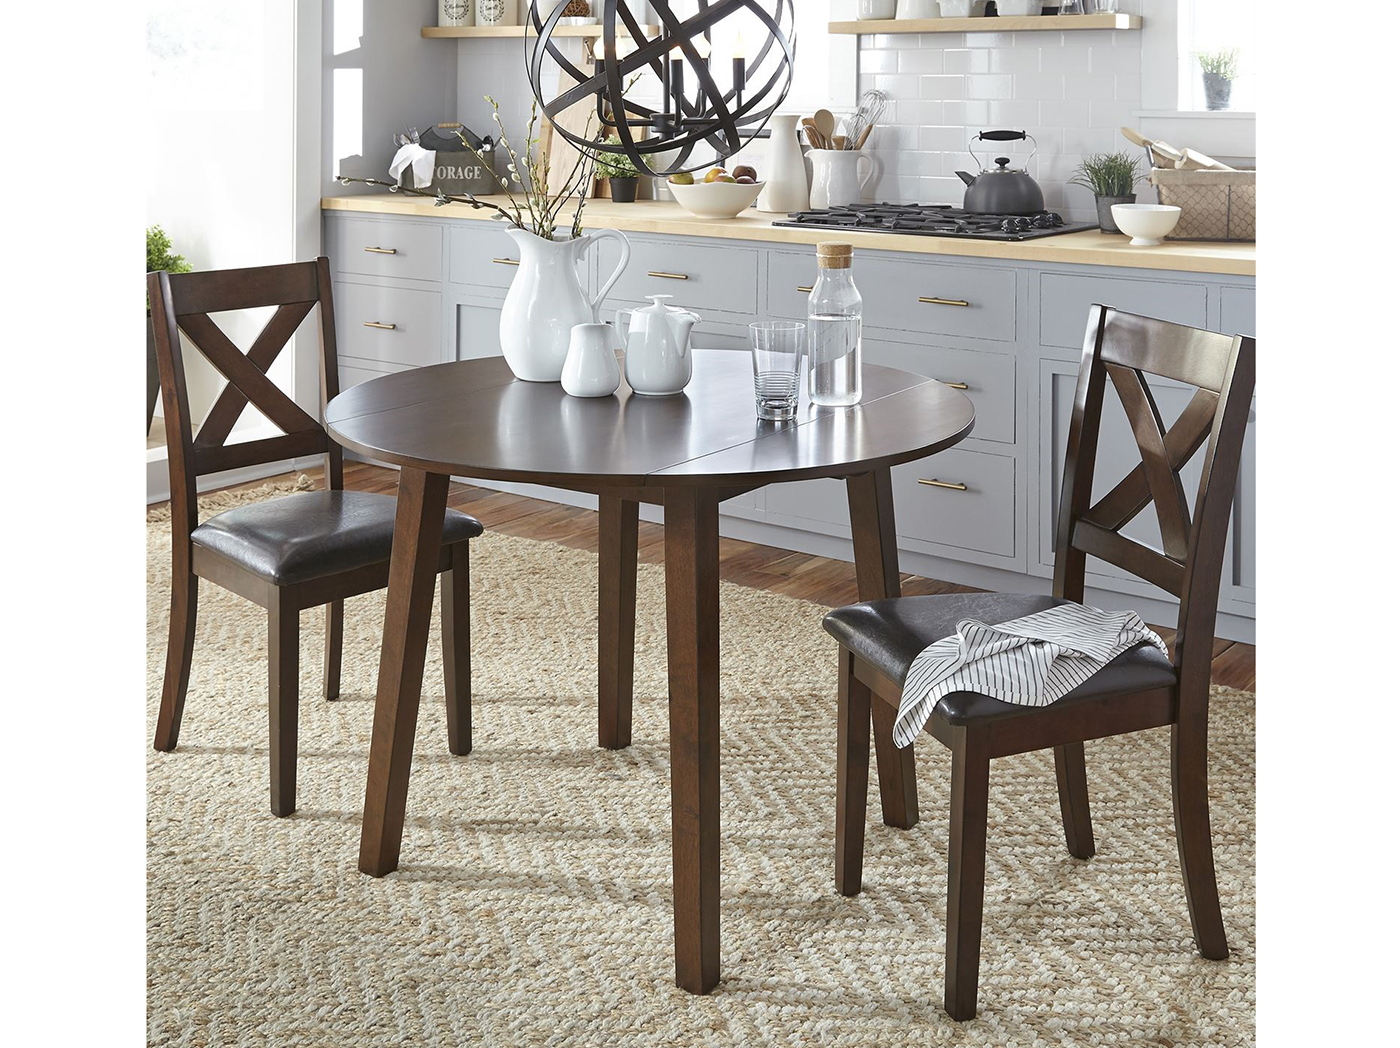 2b5dbddd3371 Dining Table Set With Bench And Chairs